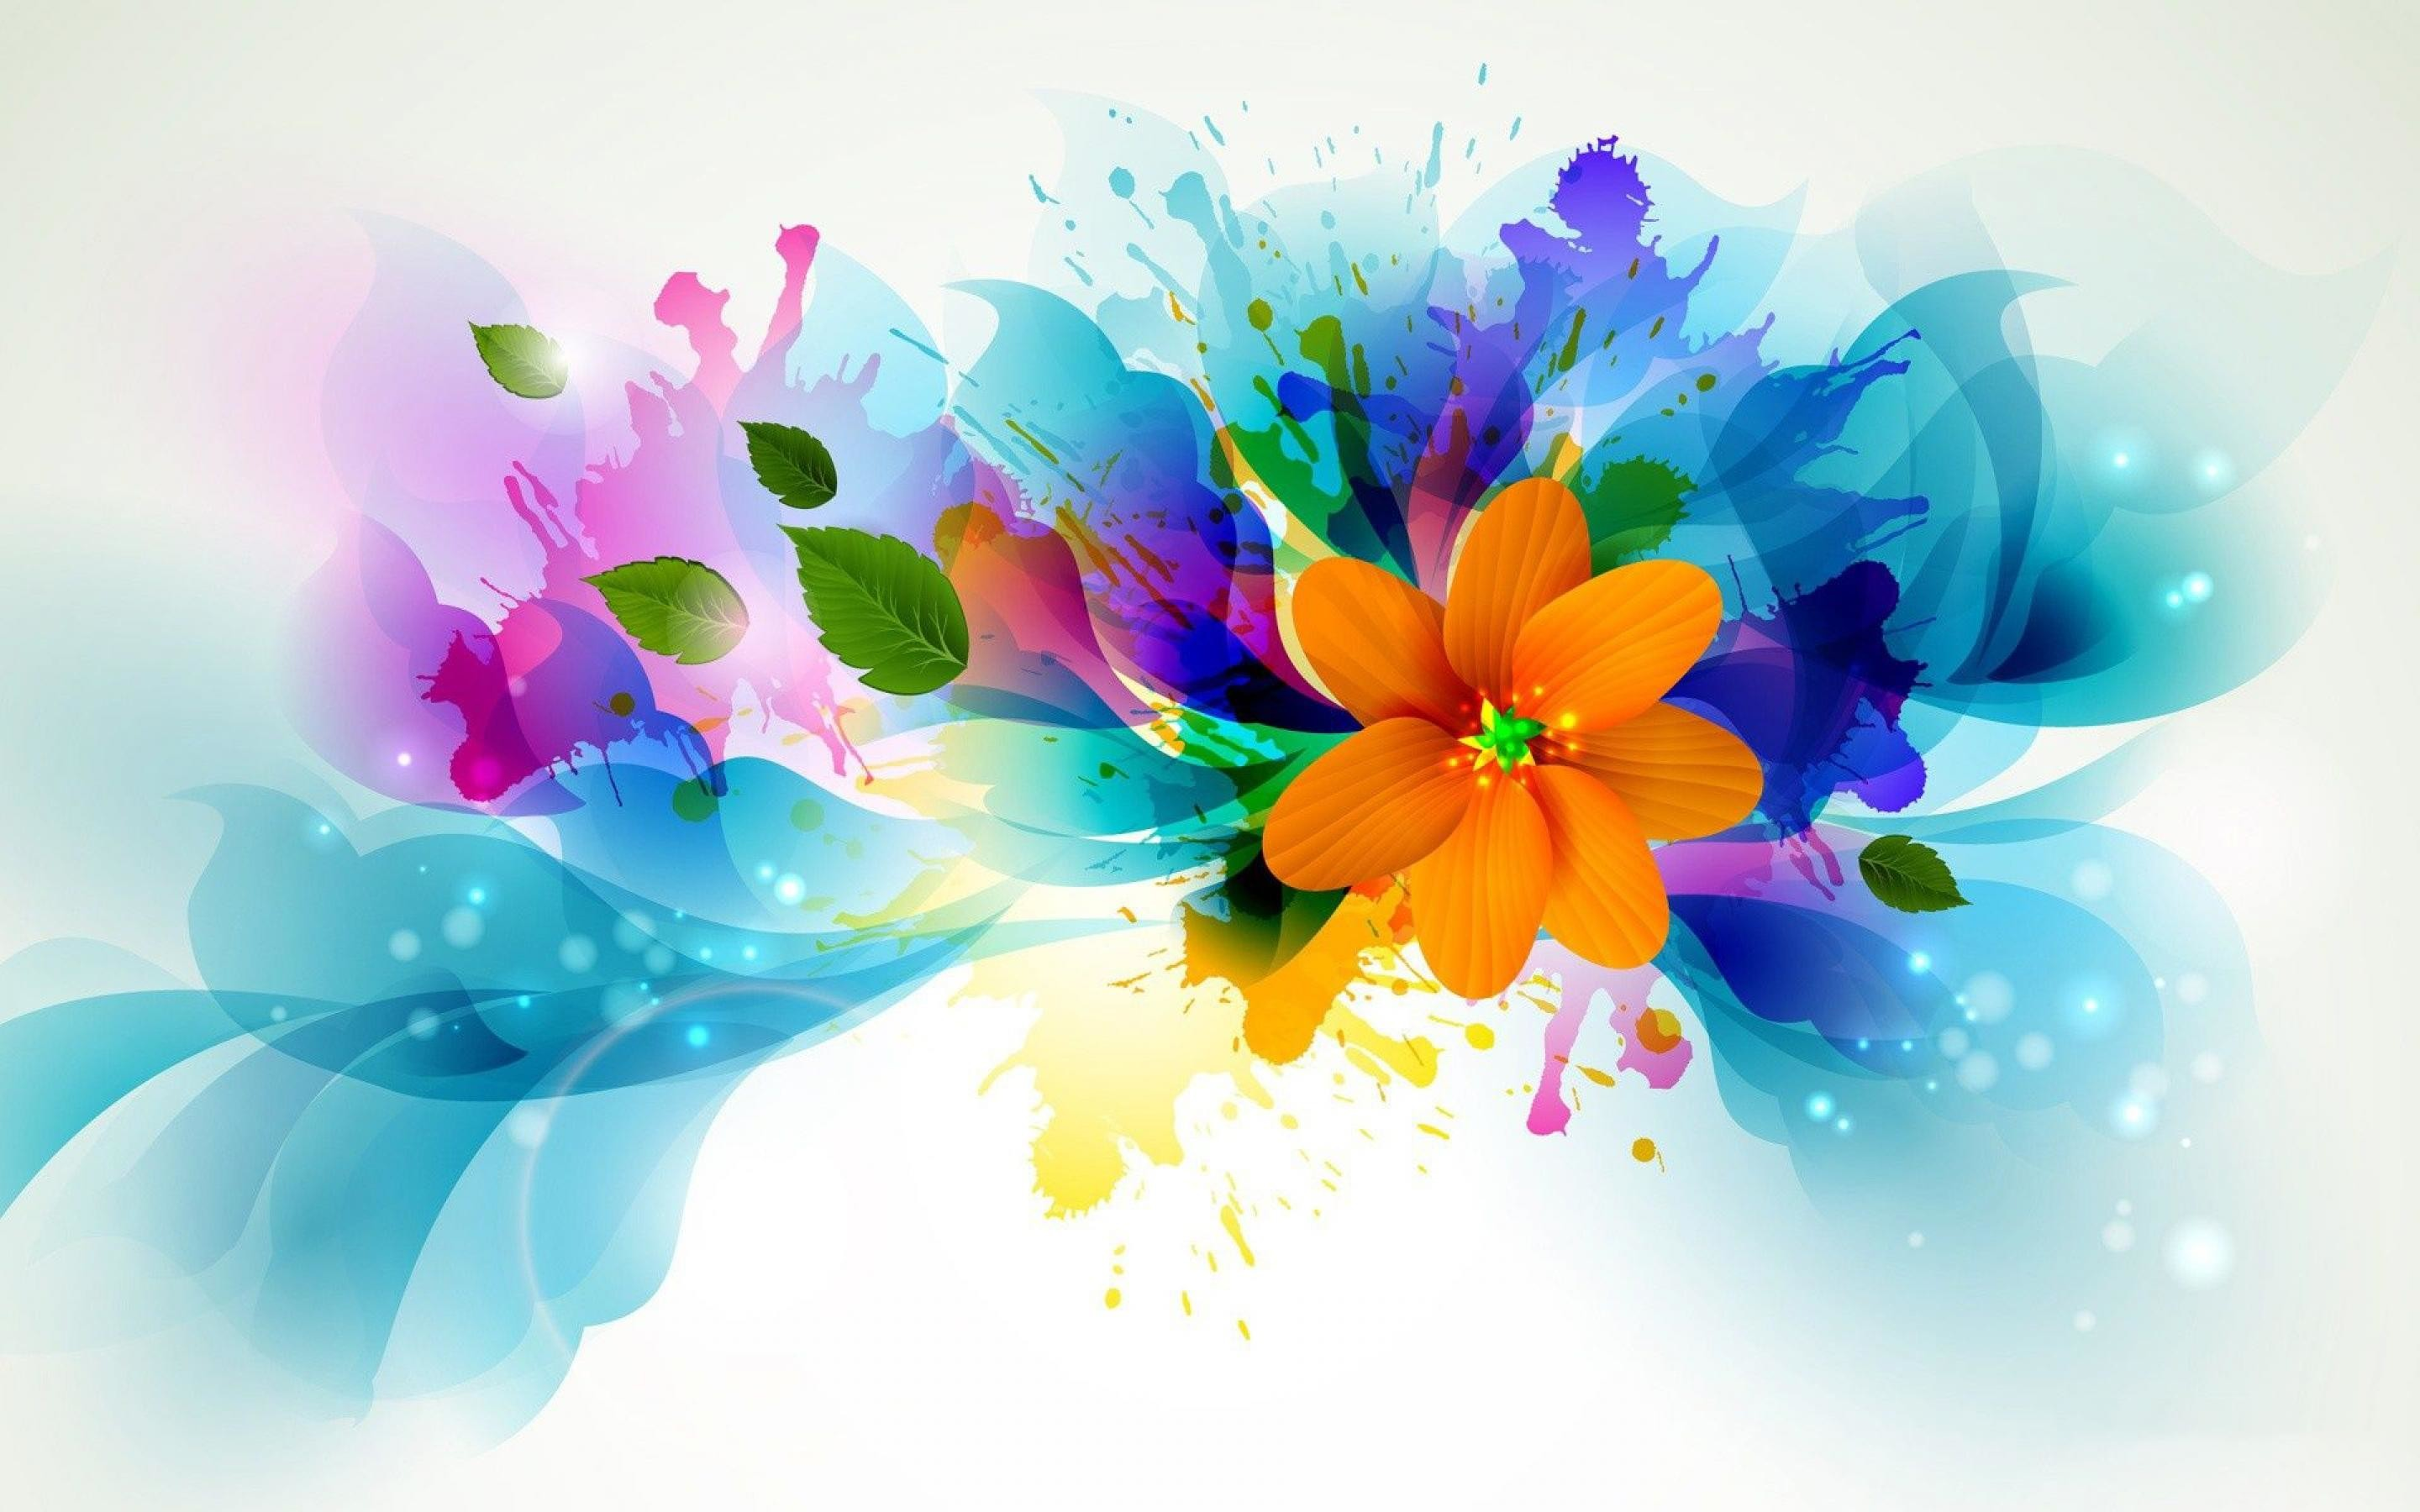 Abstract-Colorful-Flowers-Art-WallPaper-HD | Wallpapers Photos